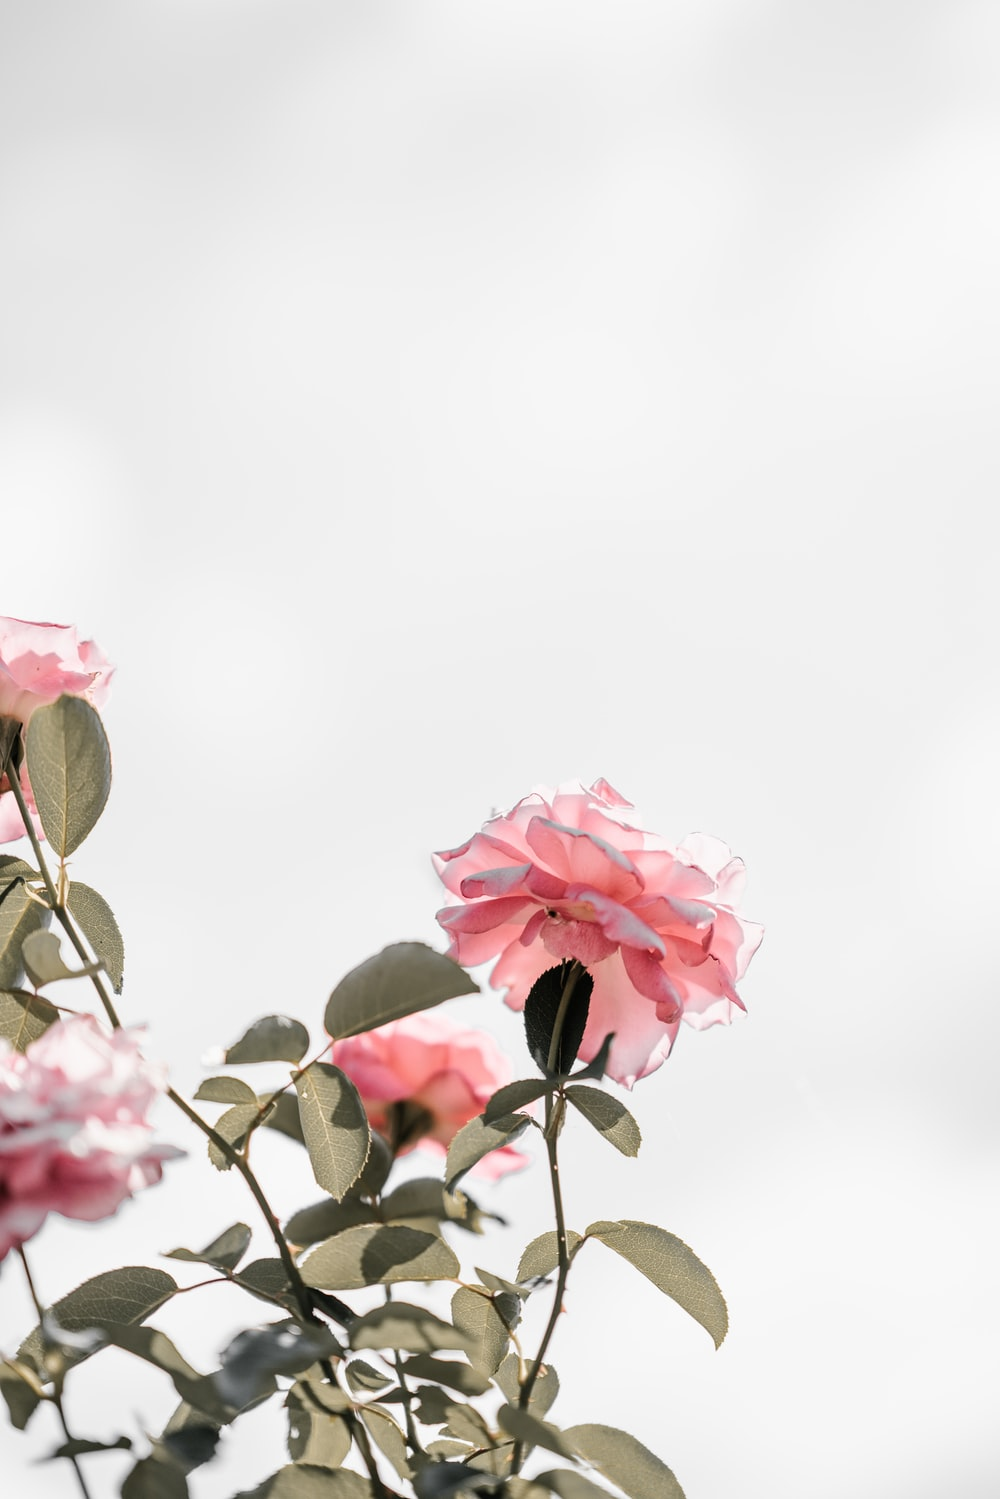 100 pink flower pictures download free images on unsplash pink petaled flowers mightylinksfo